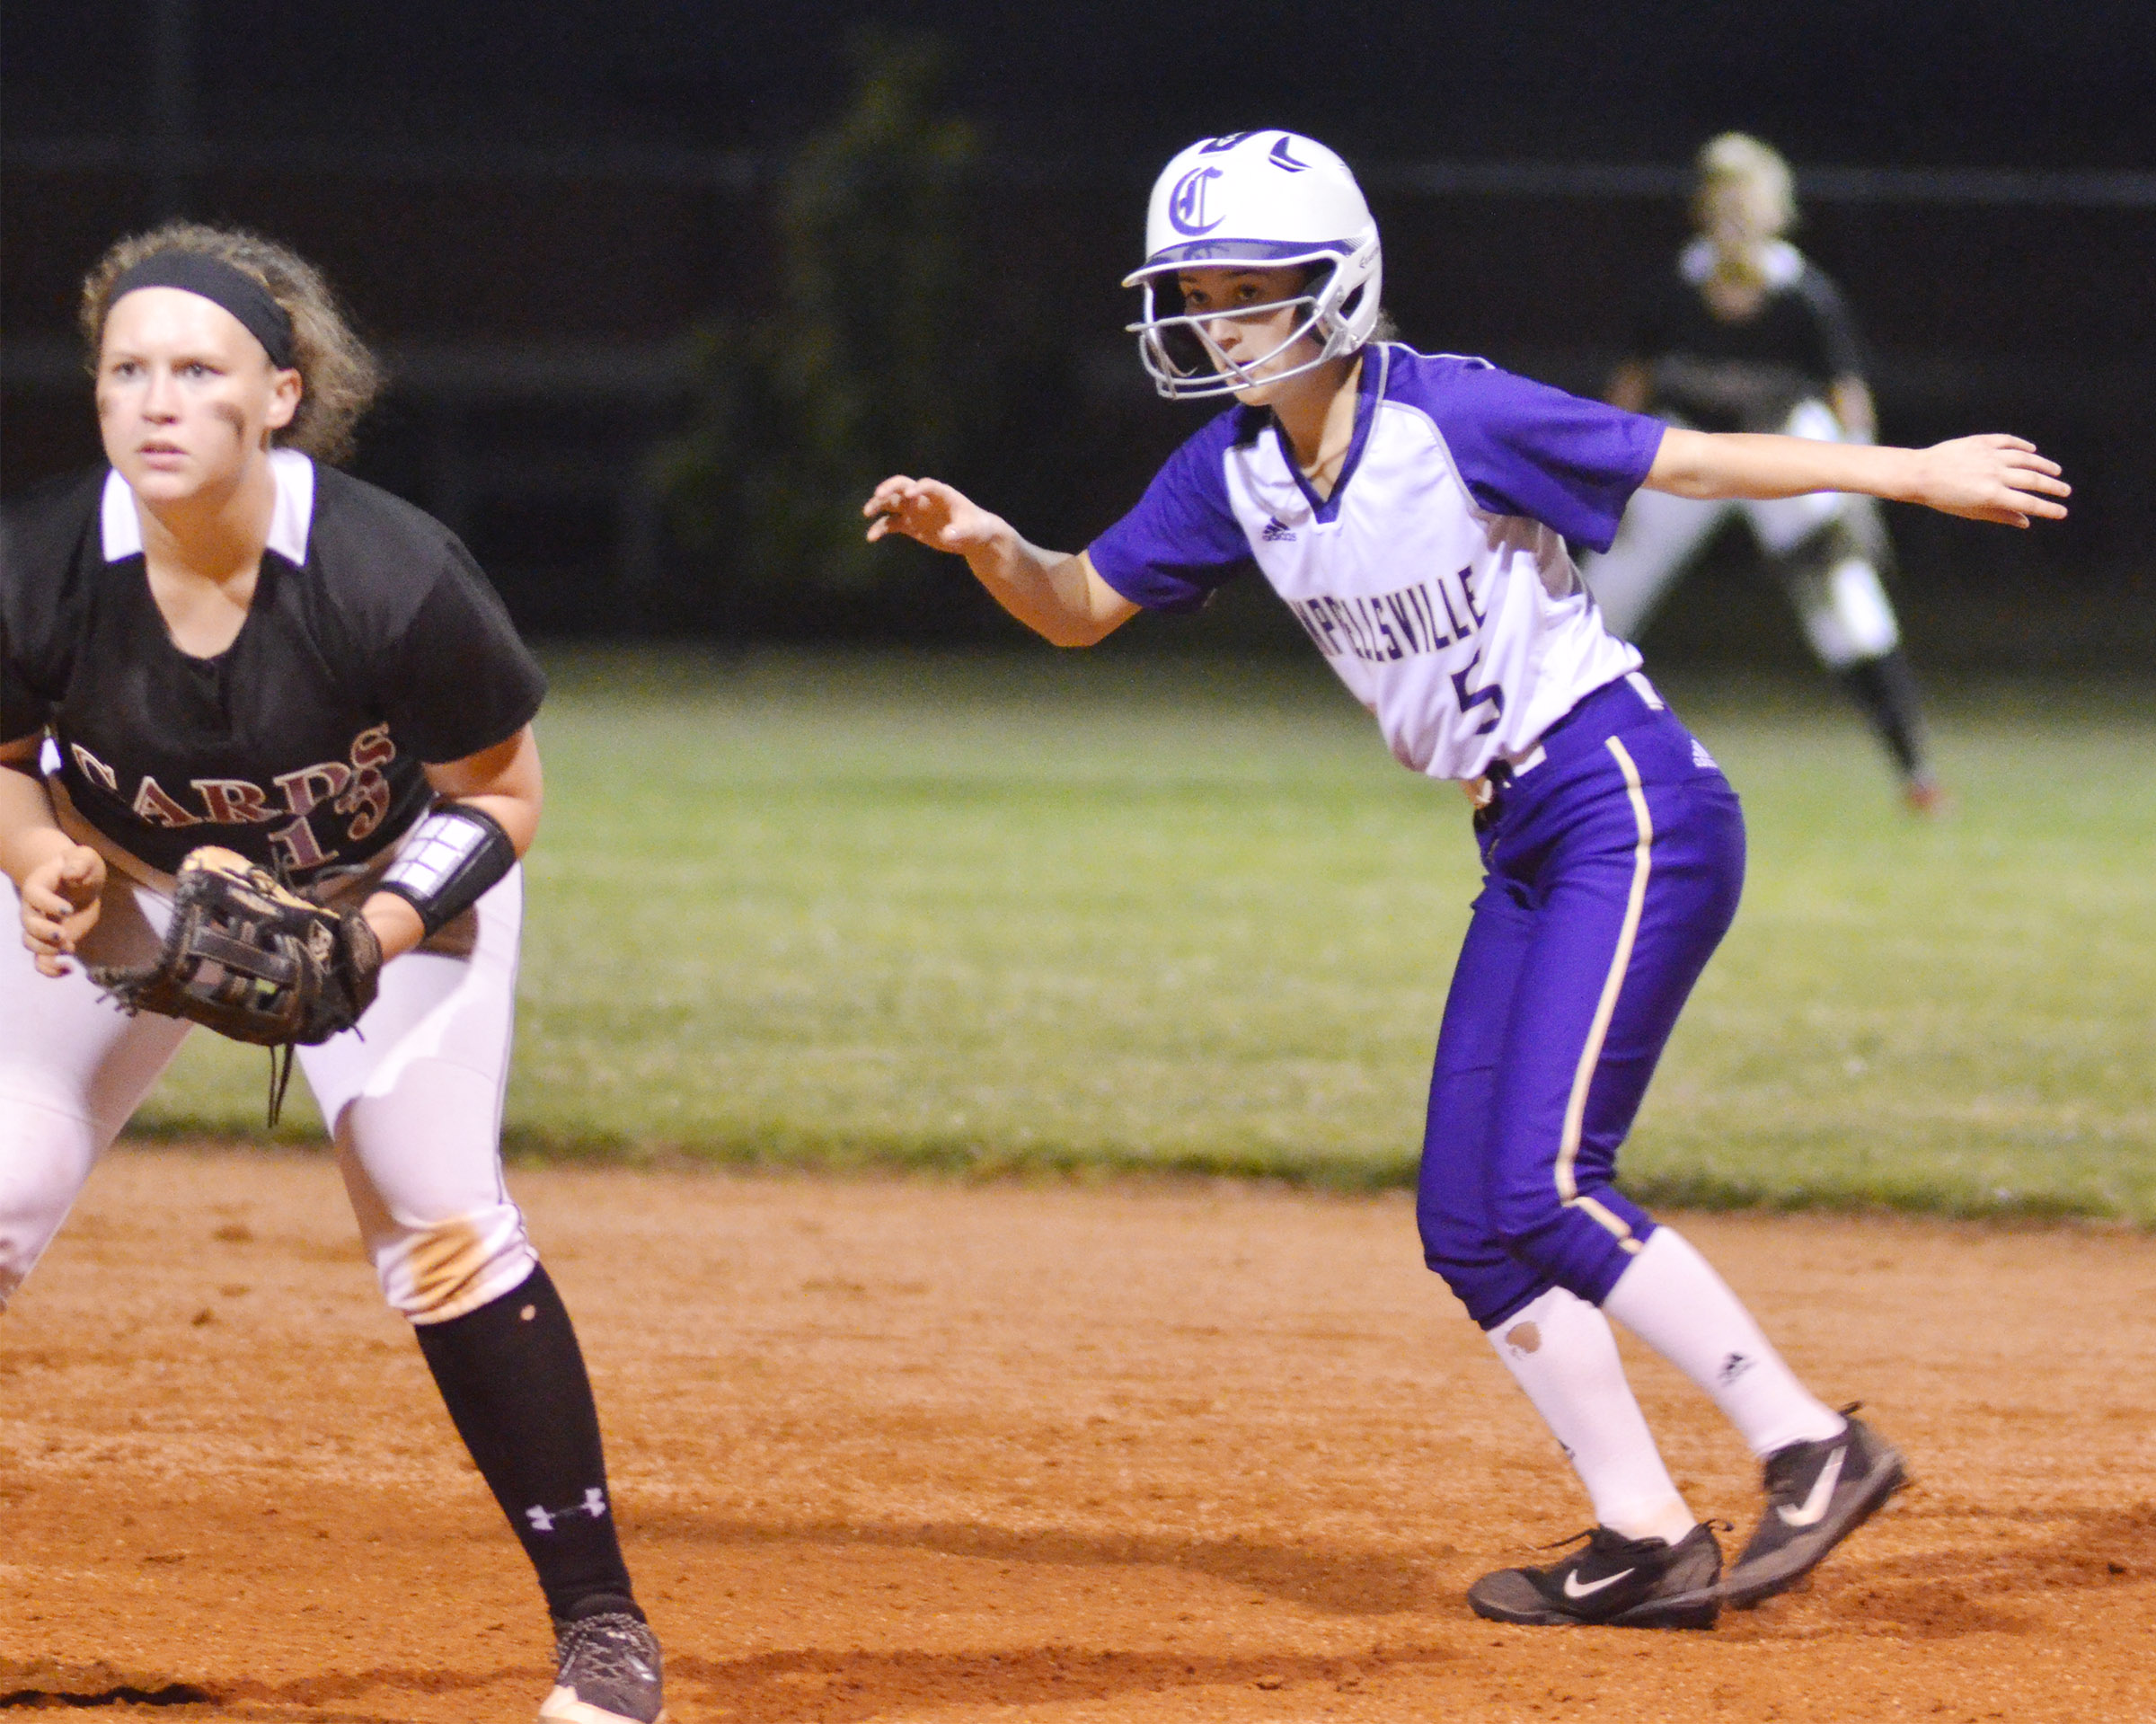 CHS freshman Bailey Thompson looks to steal second.